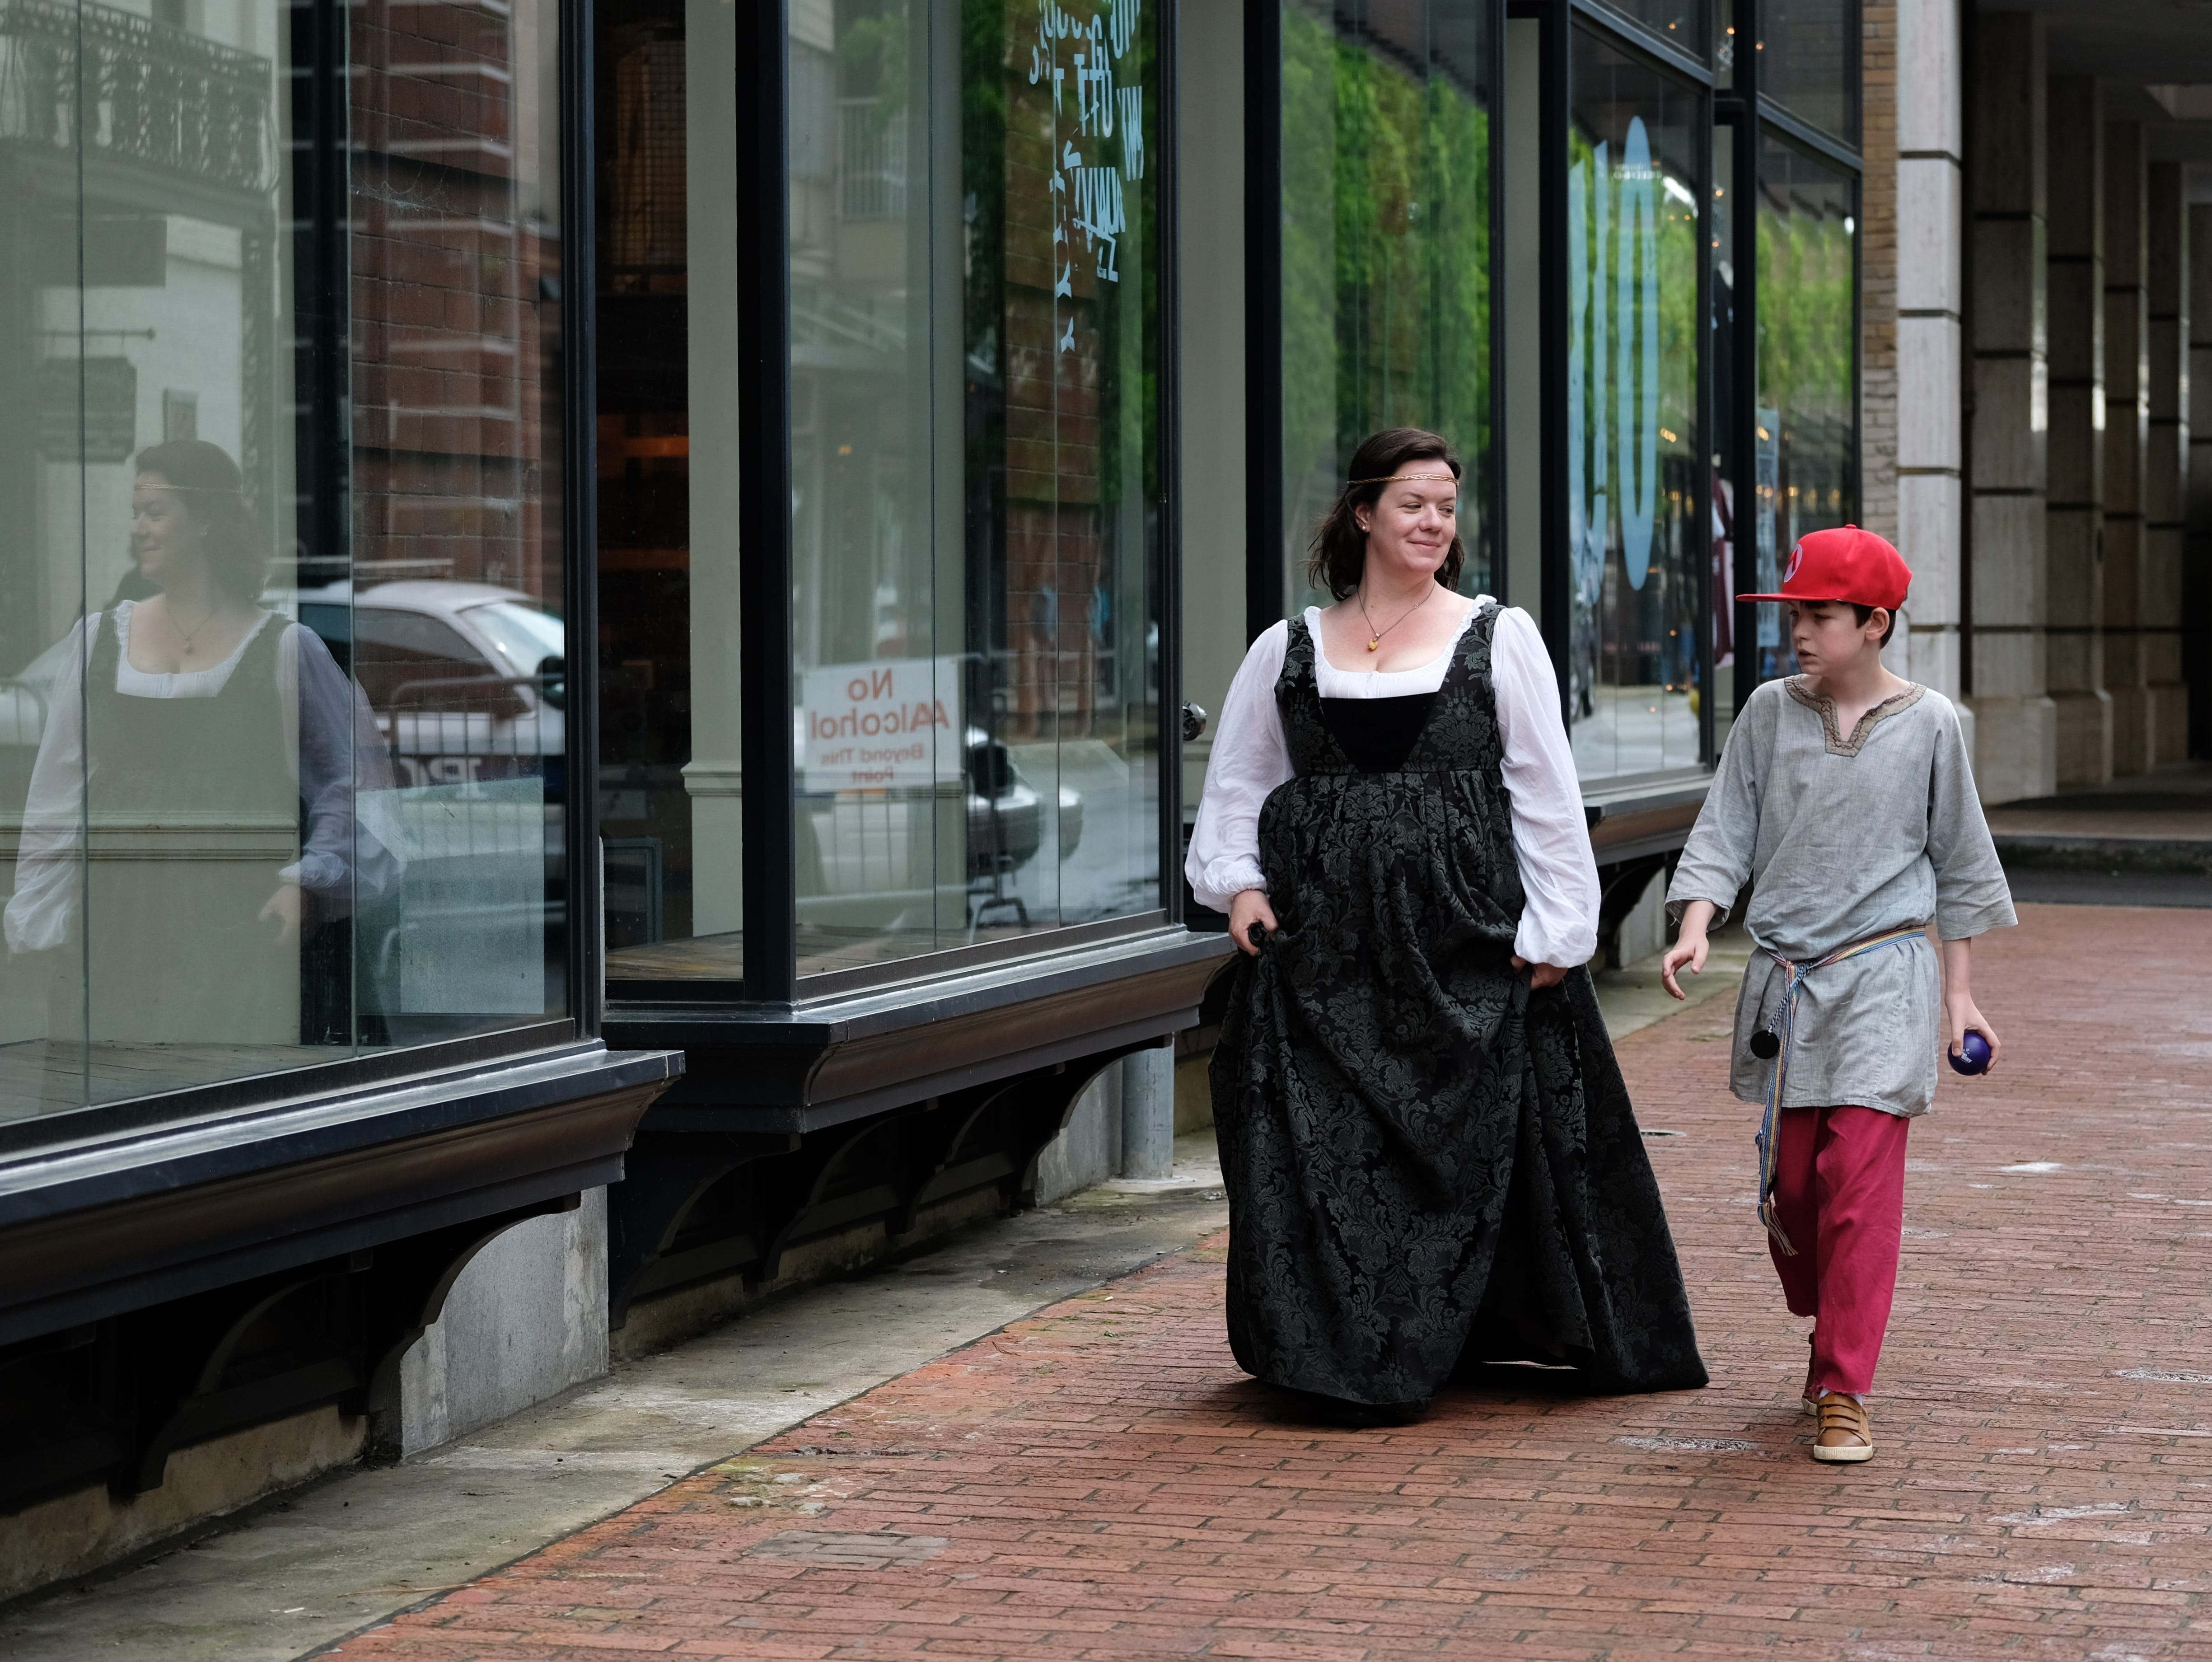 Shannon Bryant and Daniel Carey, 11, make their way to the Rossini Festival in Knoxville on Saturday, April 13, 2019. 